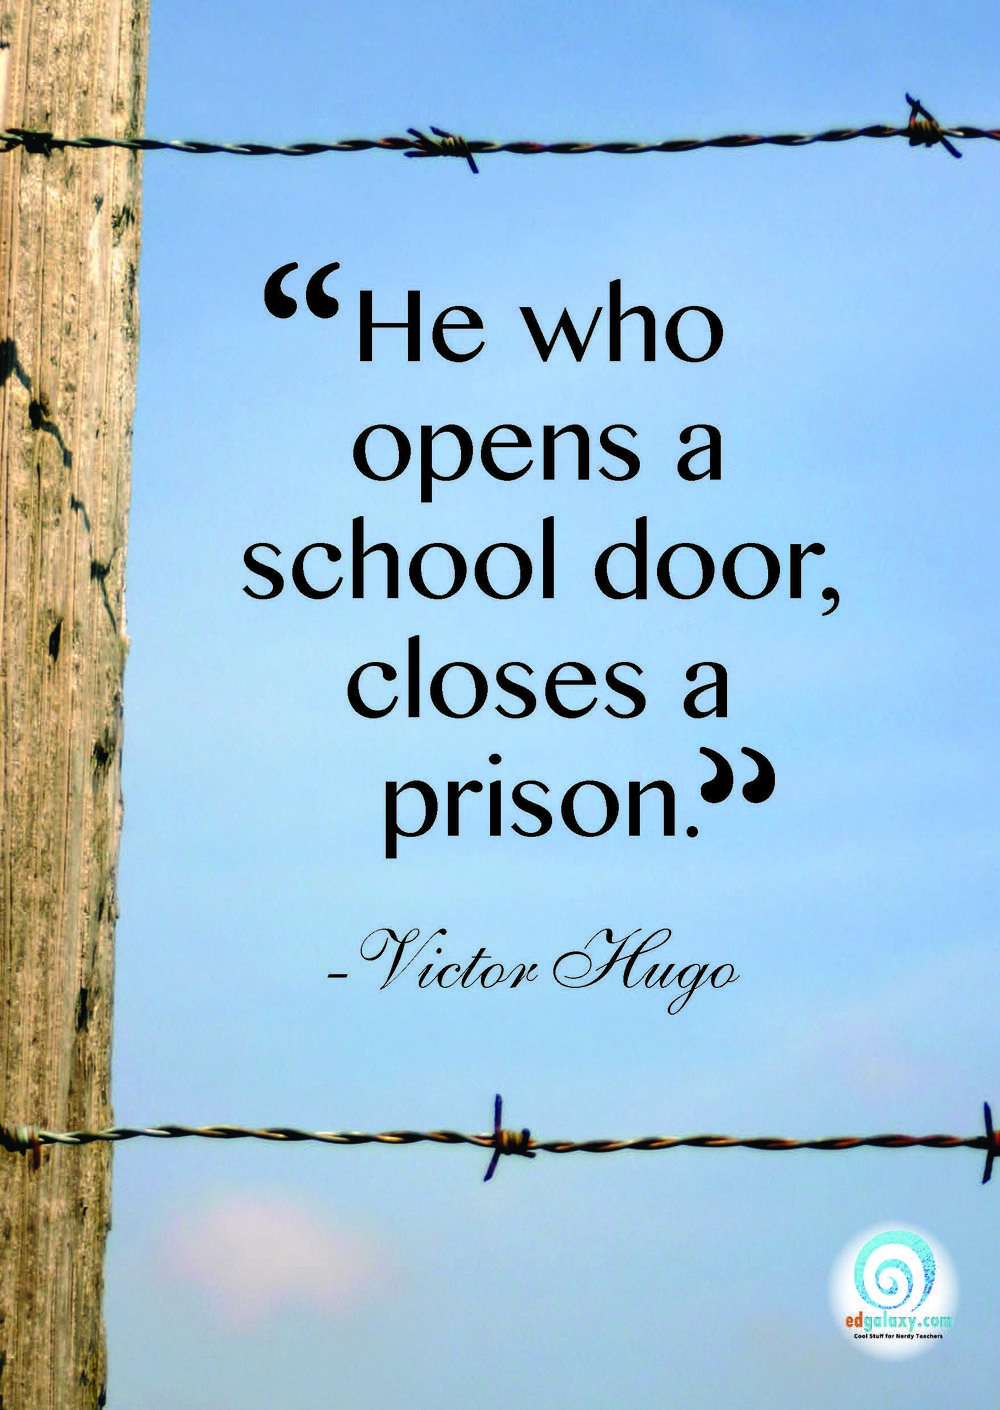 Free Daily Quotes He Who Opens A School Door Closes A Prison Victor Hugo Quote